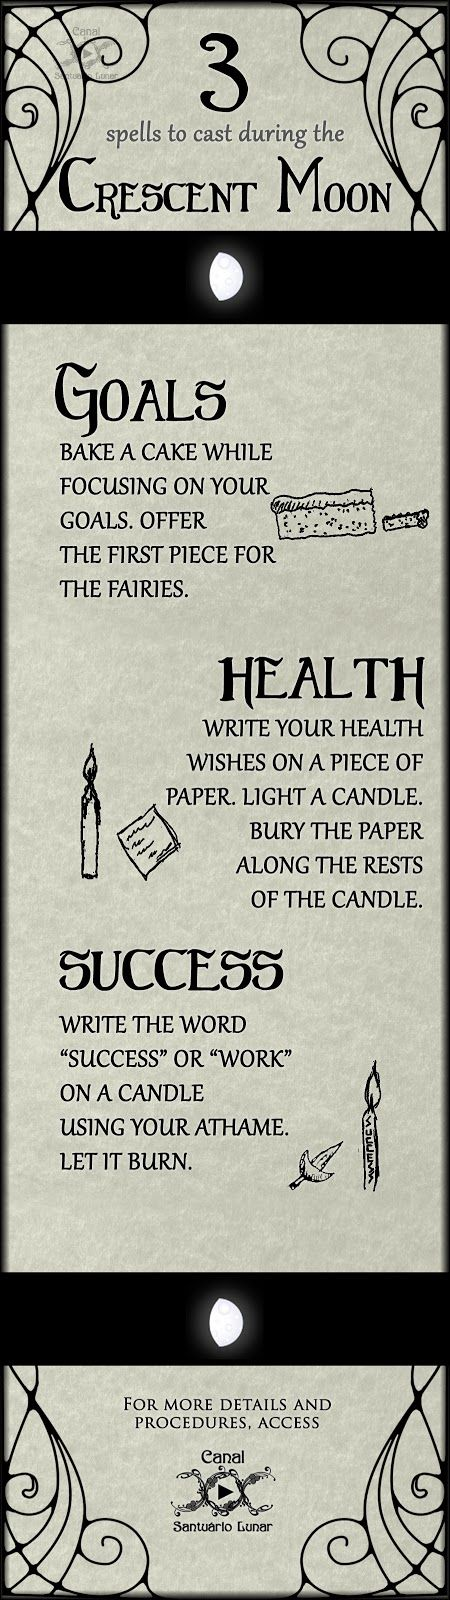 3 spells to cast during the Crescent Moon | Wicca, Witchcraft, Magic, Witch, Pagan Enjoy the power of the Crescent Moon to cast spells that can help you in achieving your goals, upgrading your health and attracting success! If you need more details about how to cast them, check our Santuário Lunar!